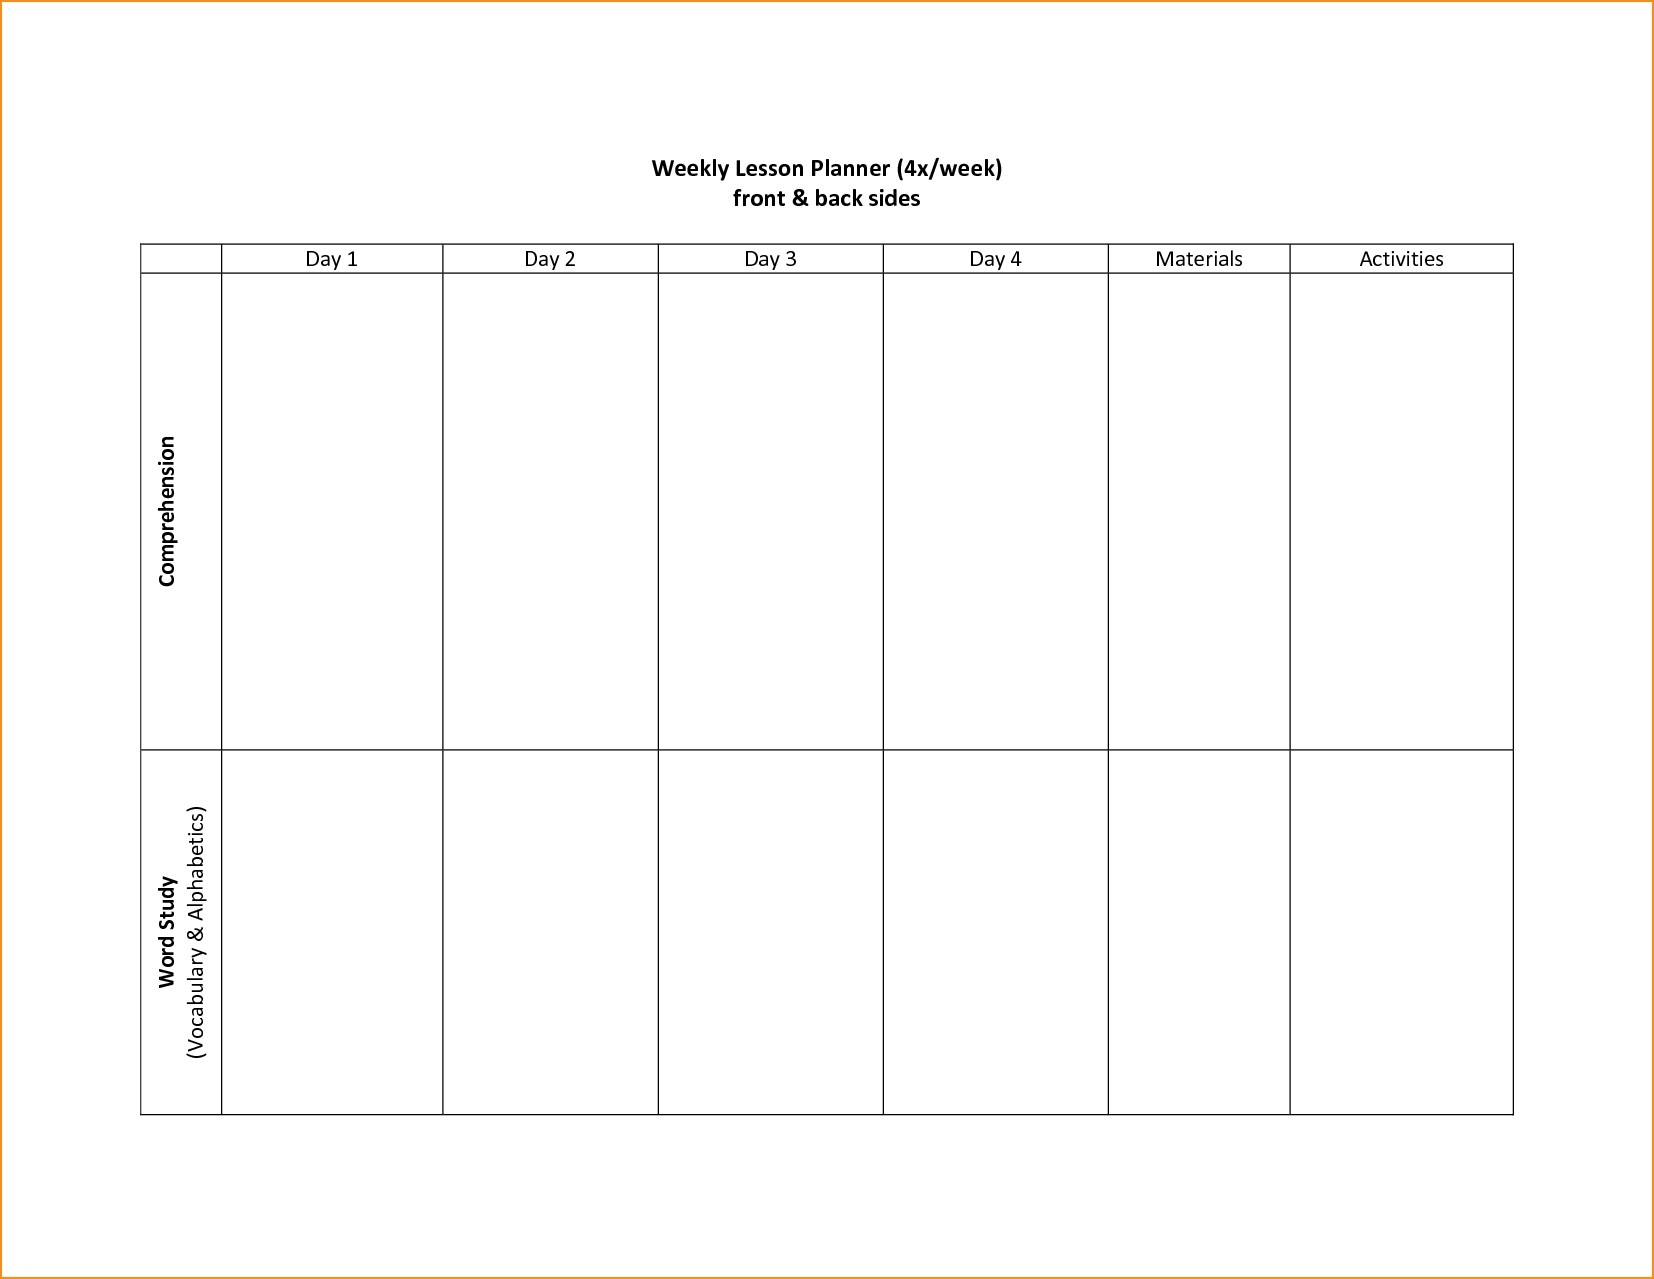 Schedule Template Week Blank Calendar Printable Free | Smorad for 2 Week Calendar Printable Free